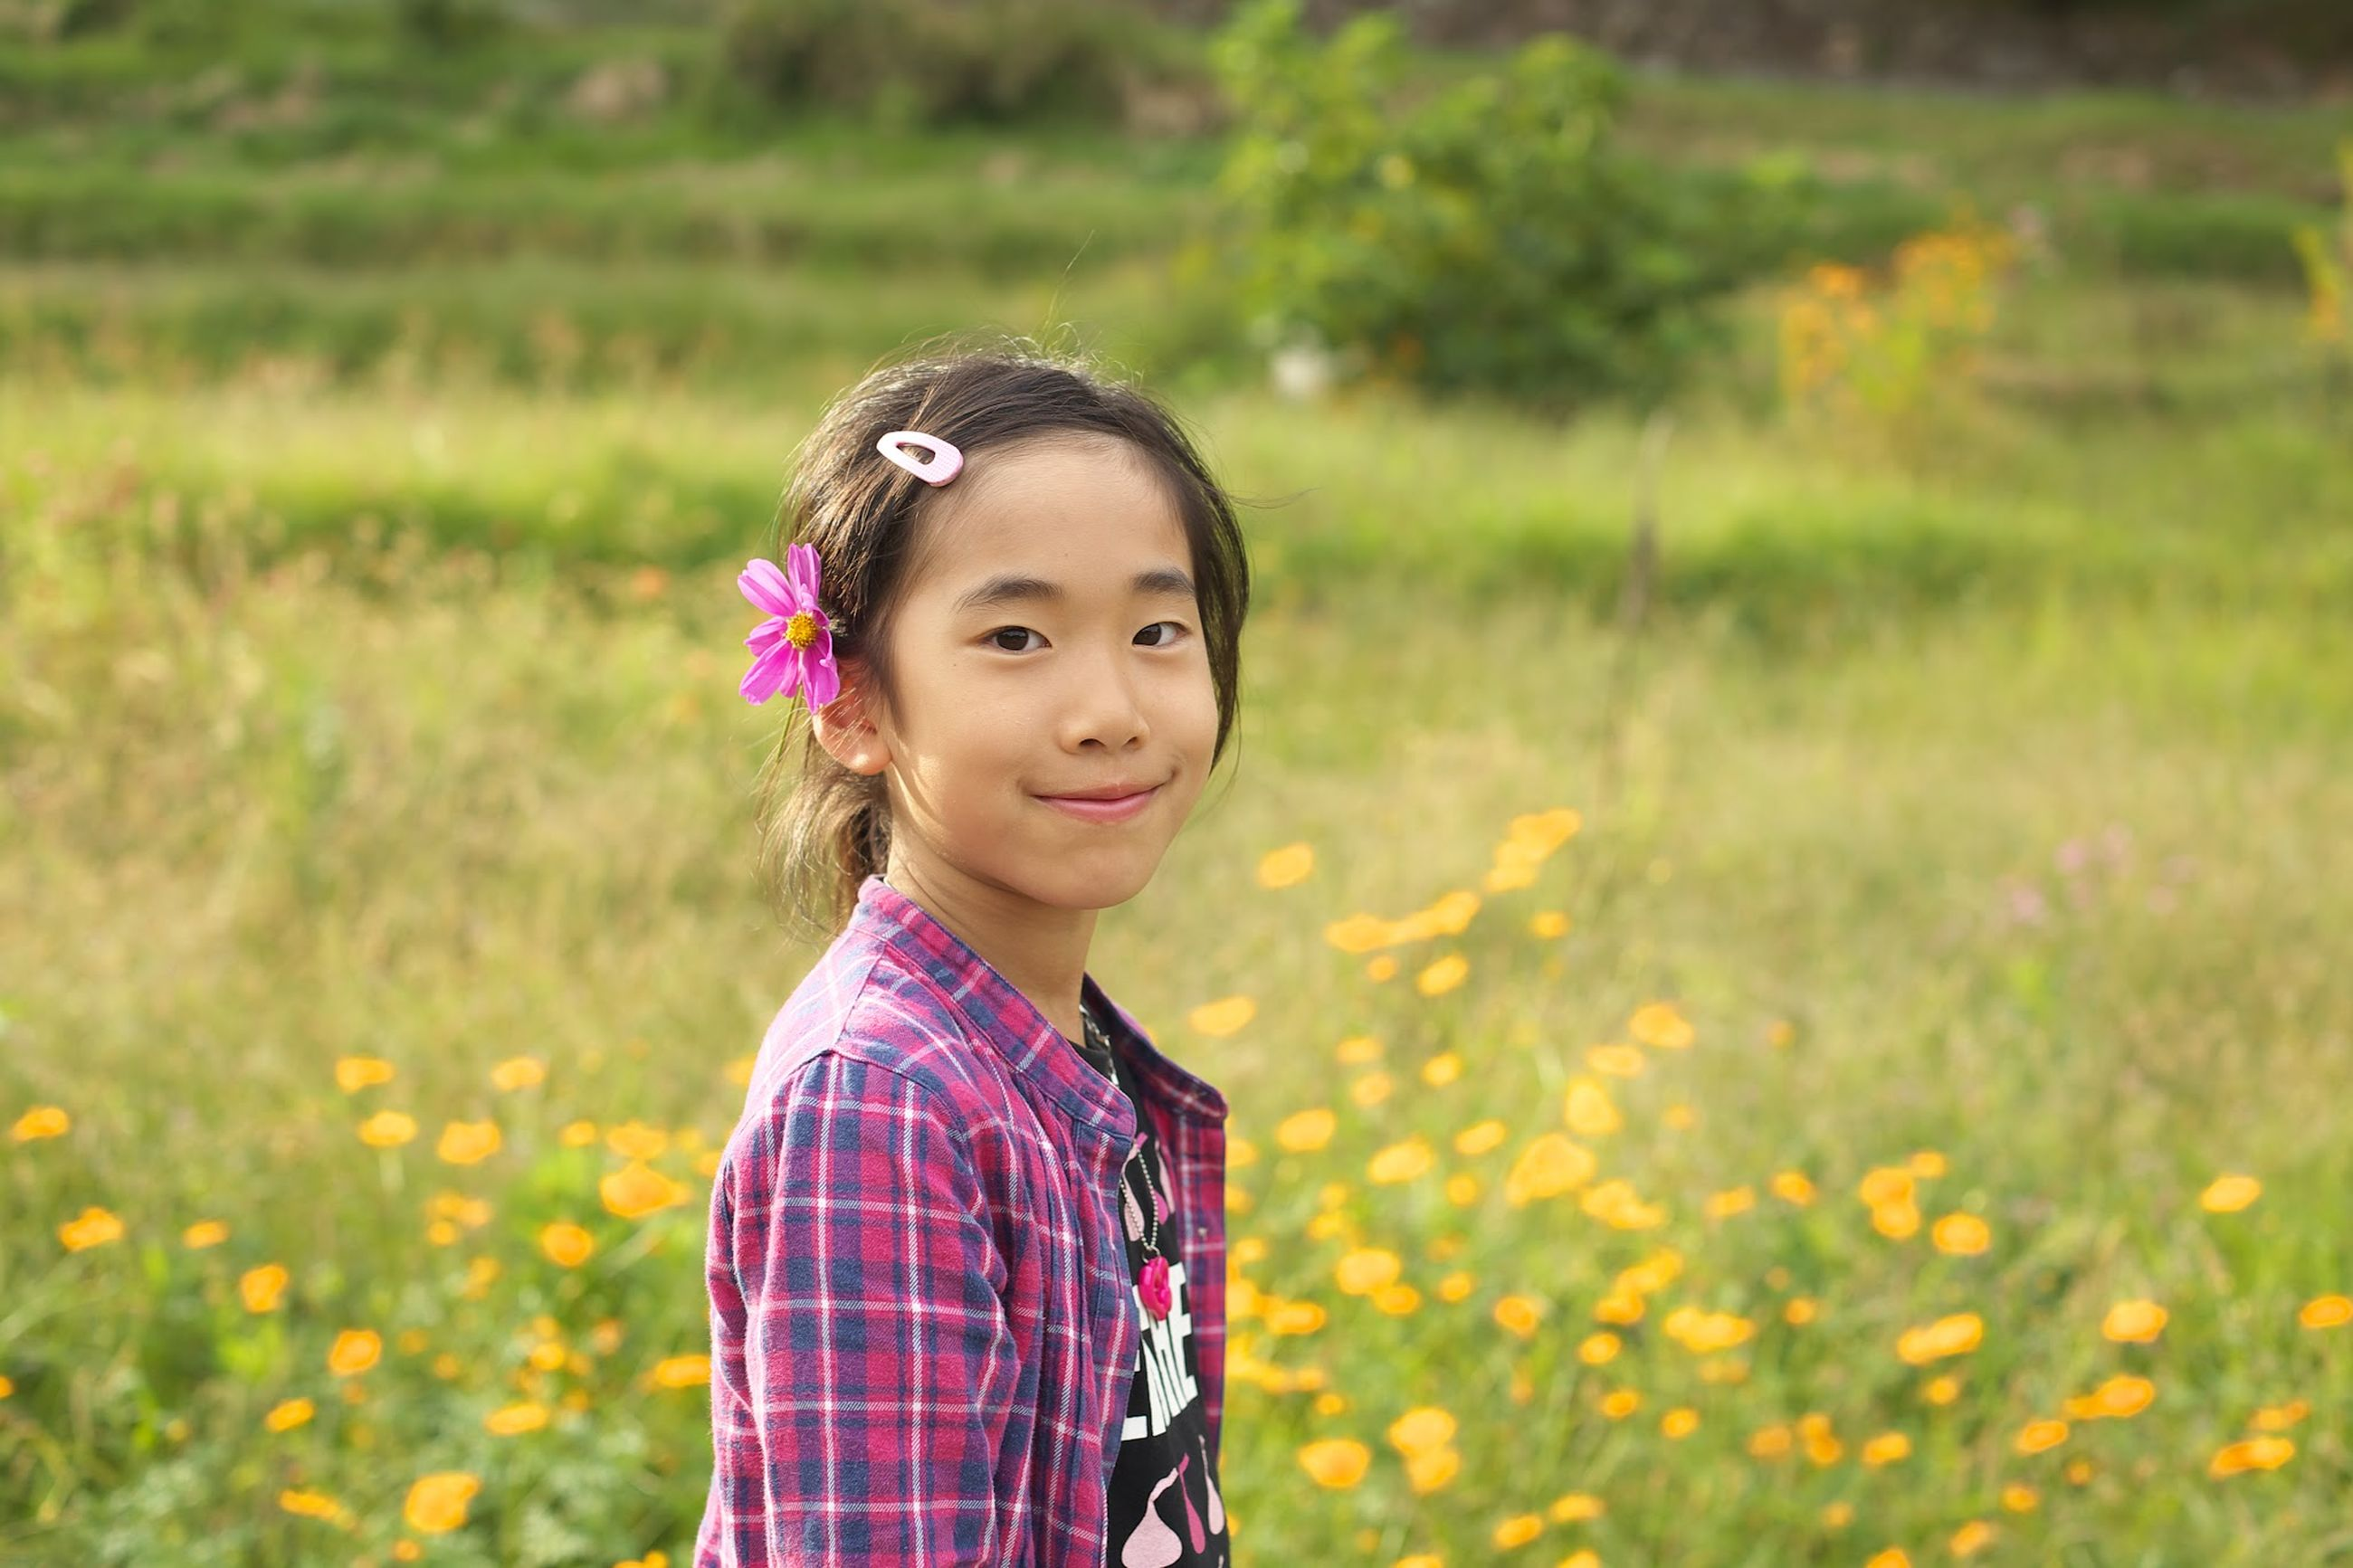 person, looking at camera, portrait, field, elementary age, grass, childhood, lifestyles, leisure activity, smiling, casual clothing, girls, focus on foreground, happiness, innocence, front view, waist up, cute